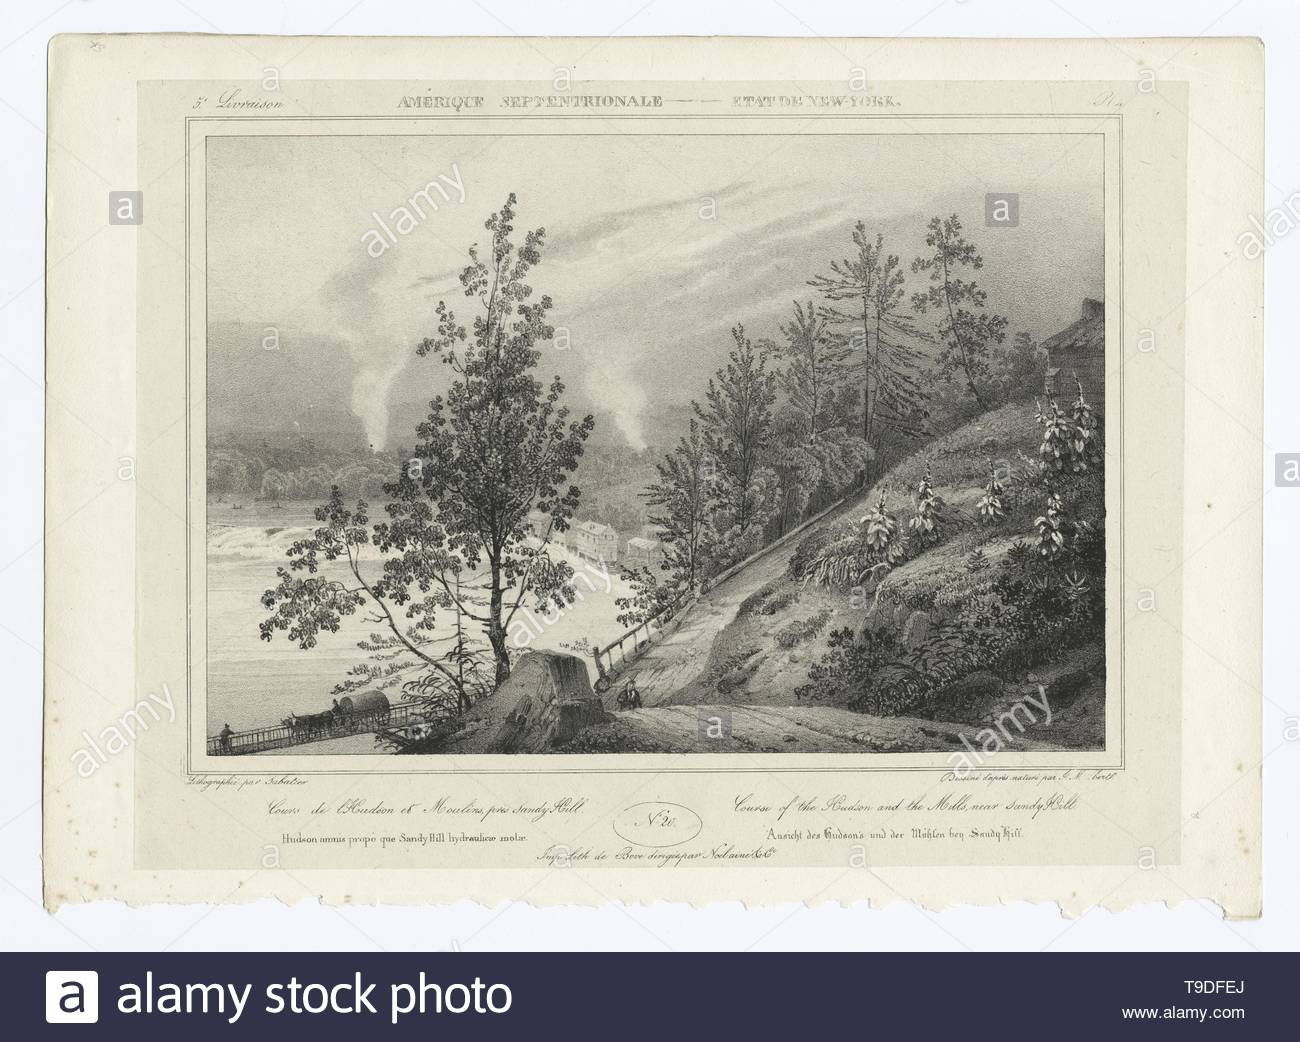 Milbert,JacquesGérard(1766-1840)-Course of the Hudson and the mills, near Sandy Hill - Stock Image